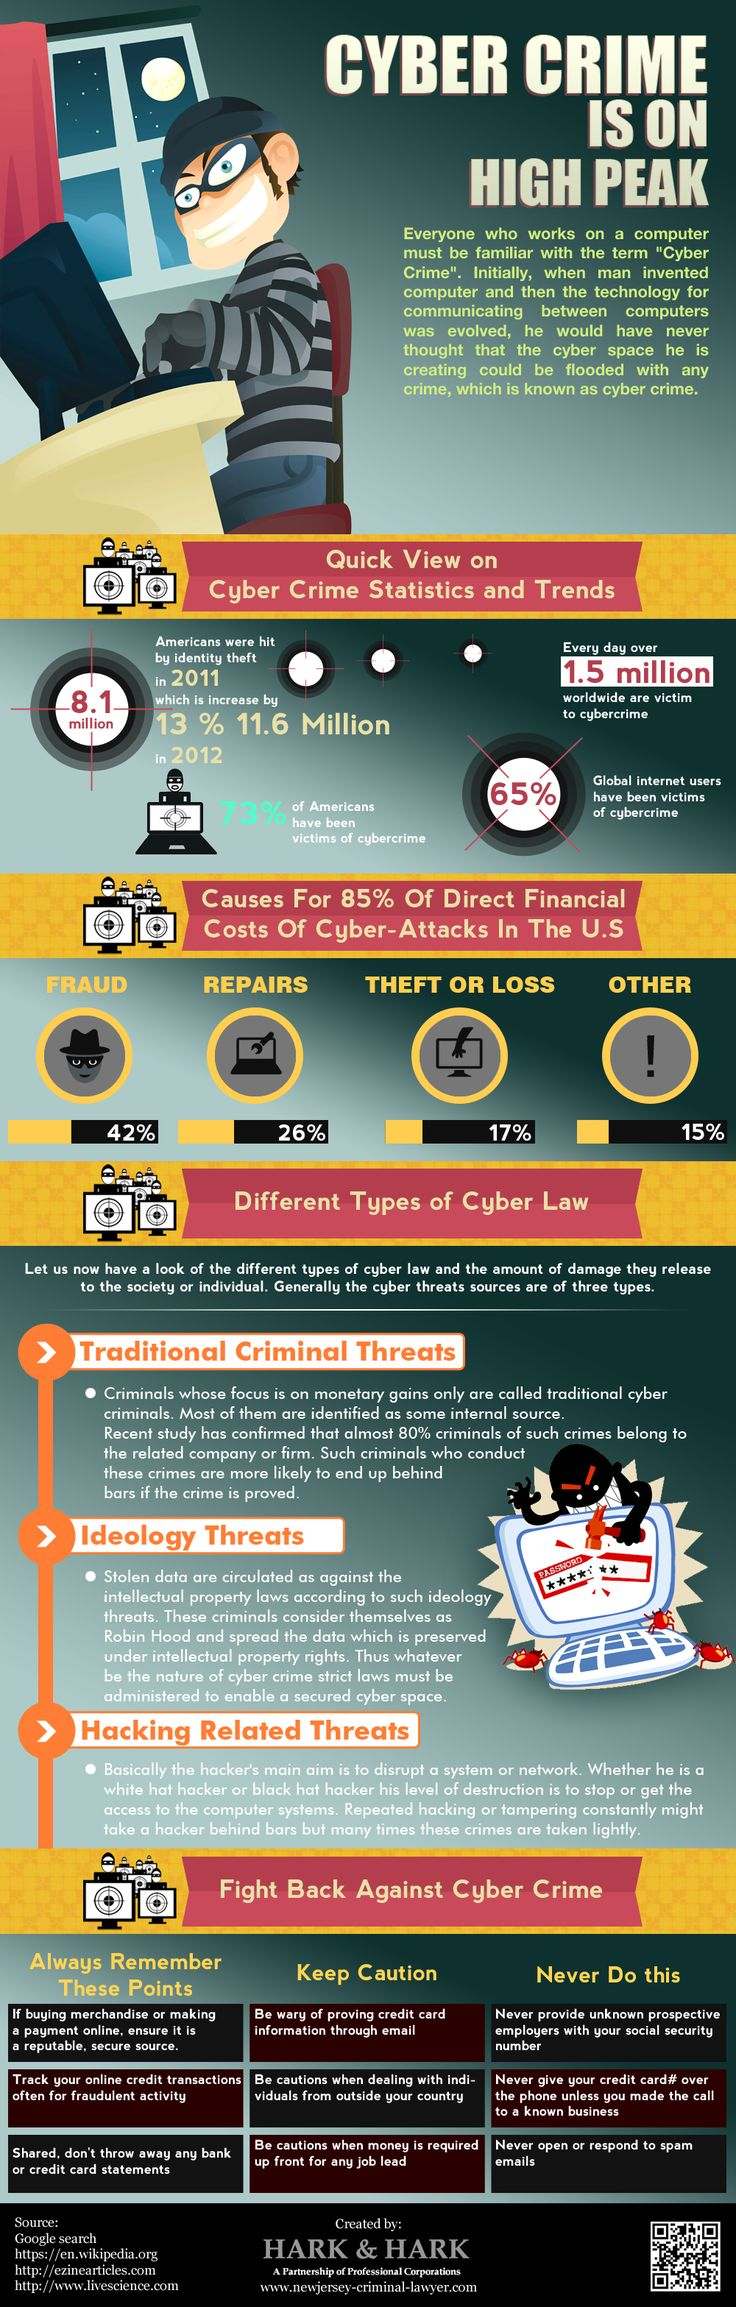 best images about cyber crime technology crime 17 best images about cyber crime technology crime and computers